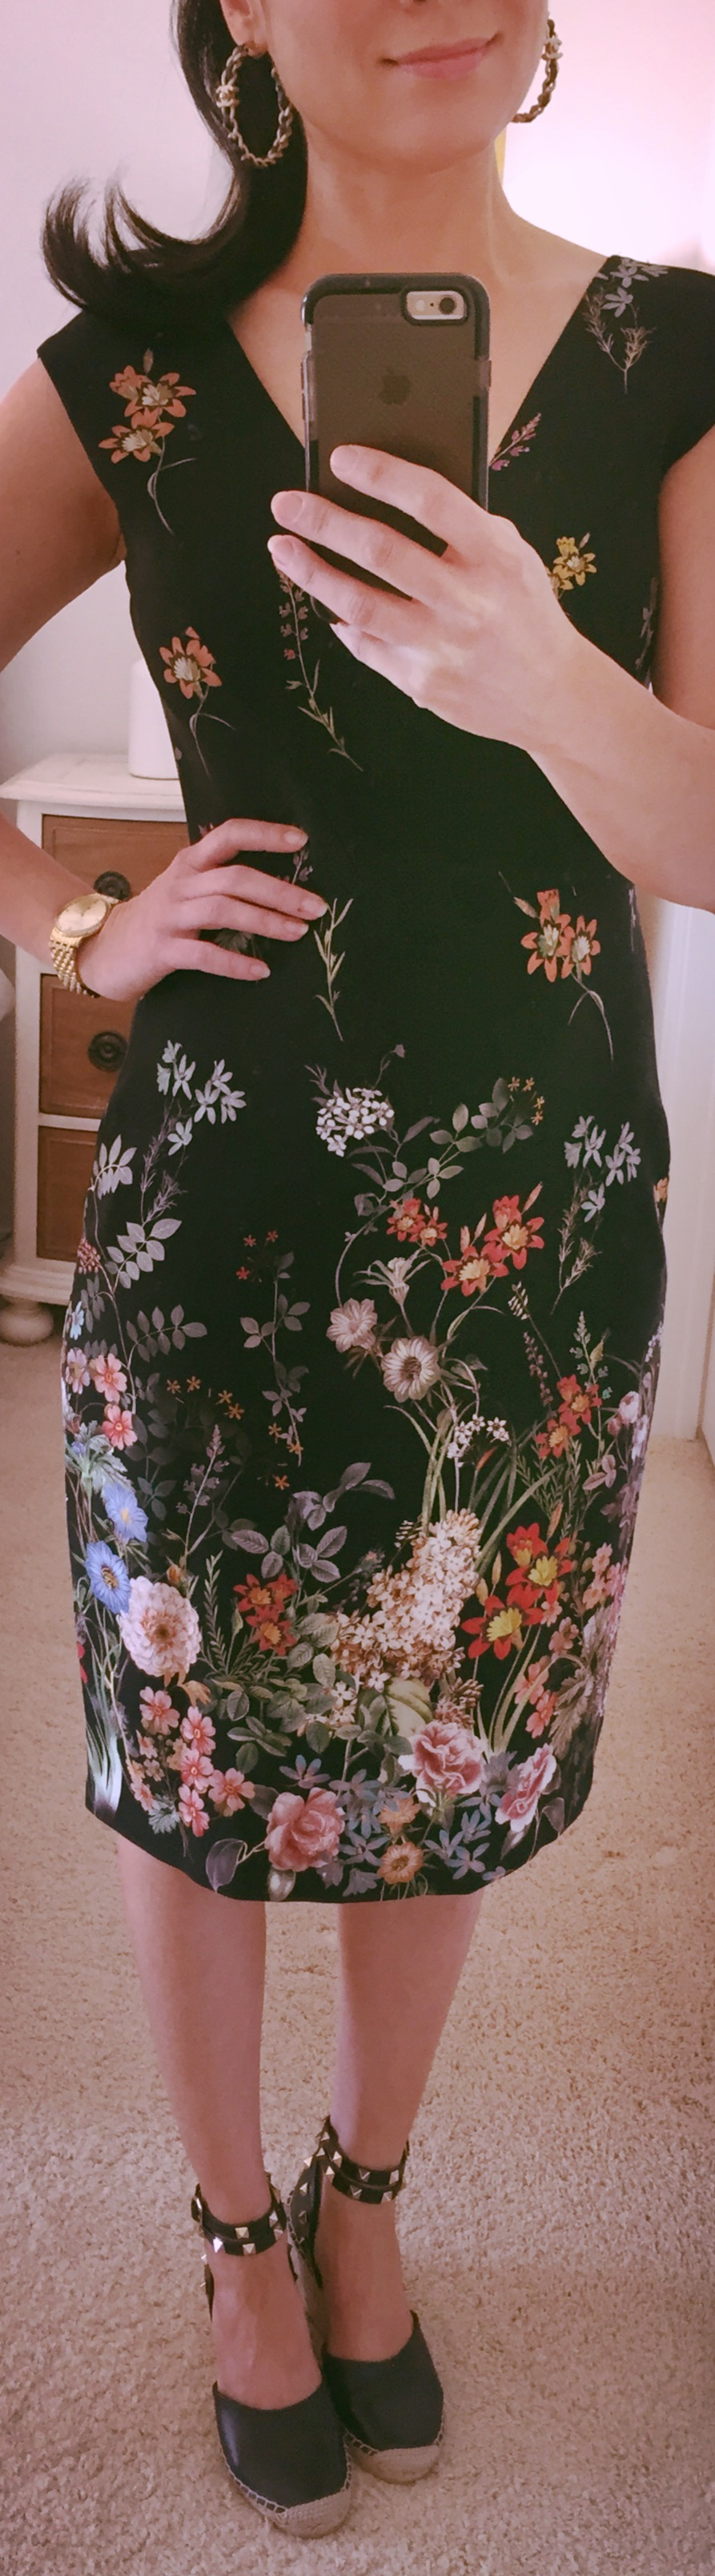 Sept 20, Floral Dress by Zara & Valentino Inspired Espadrilles